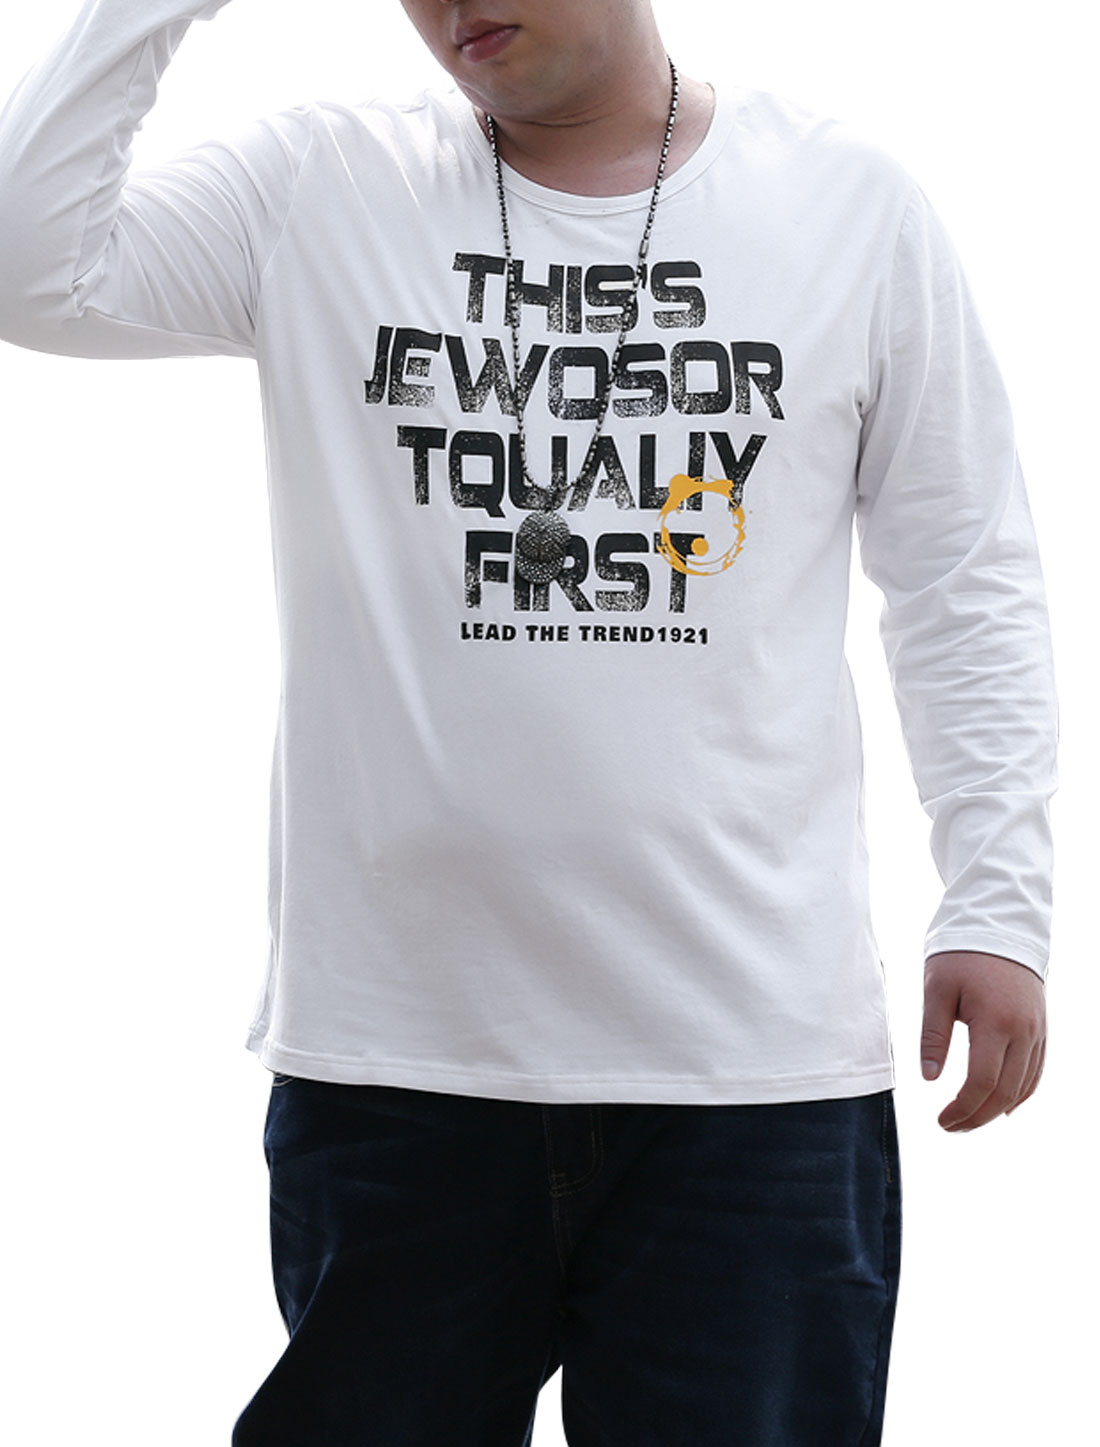 Long Sleeves Letters Print NEW Fashion for Men Tee Shirt White XL